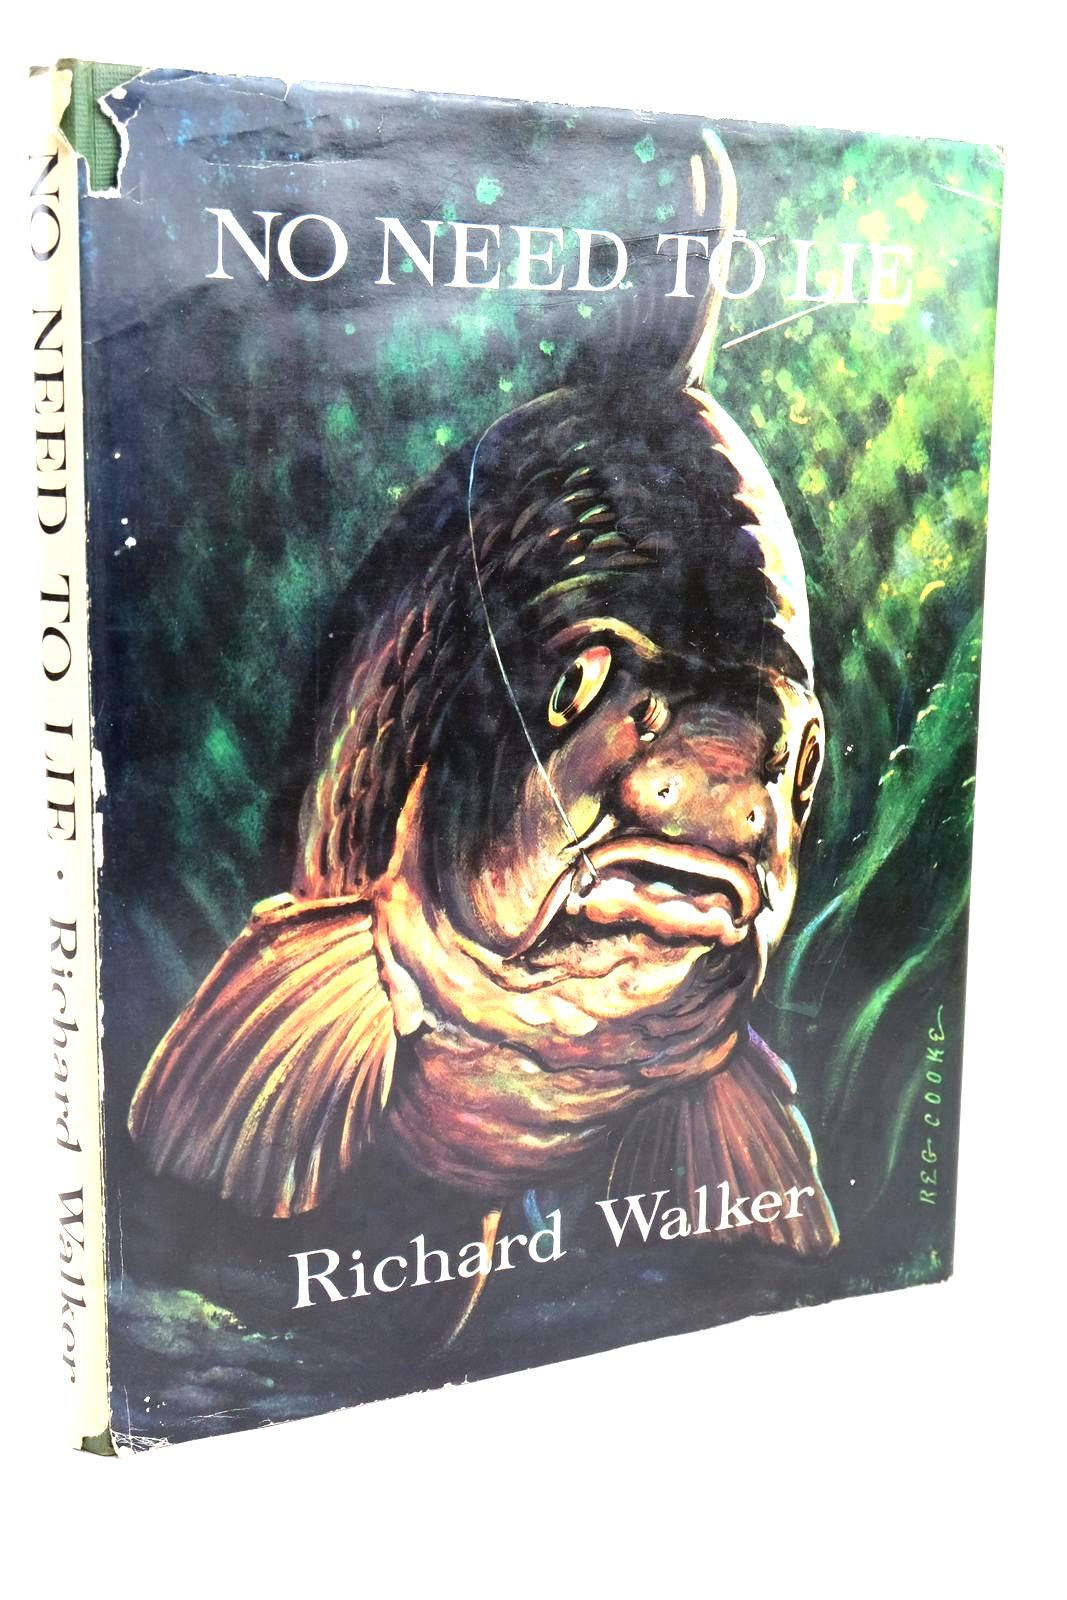 Photo of NO NEED TO LIE written by Walker, Richard illustrated by Cooke, Reg published by E.M. Art & Publishing Limited (STOCK CODE: 1320488)  for sale by Stella & Rose's Books